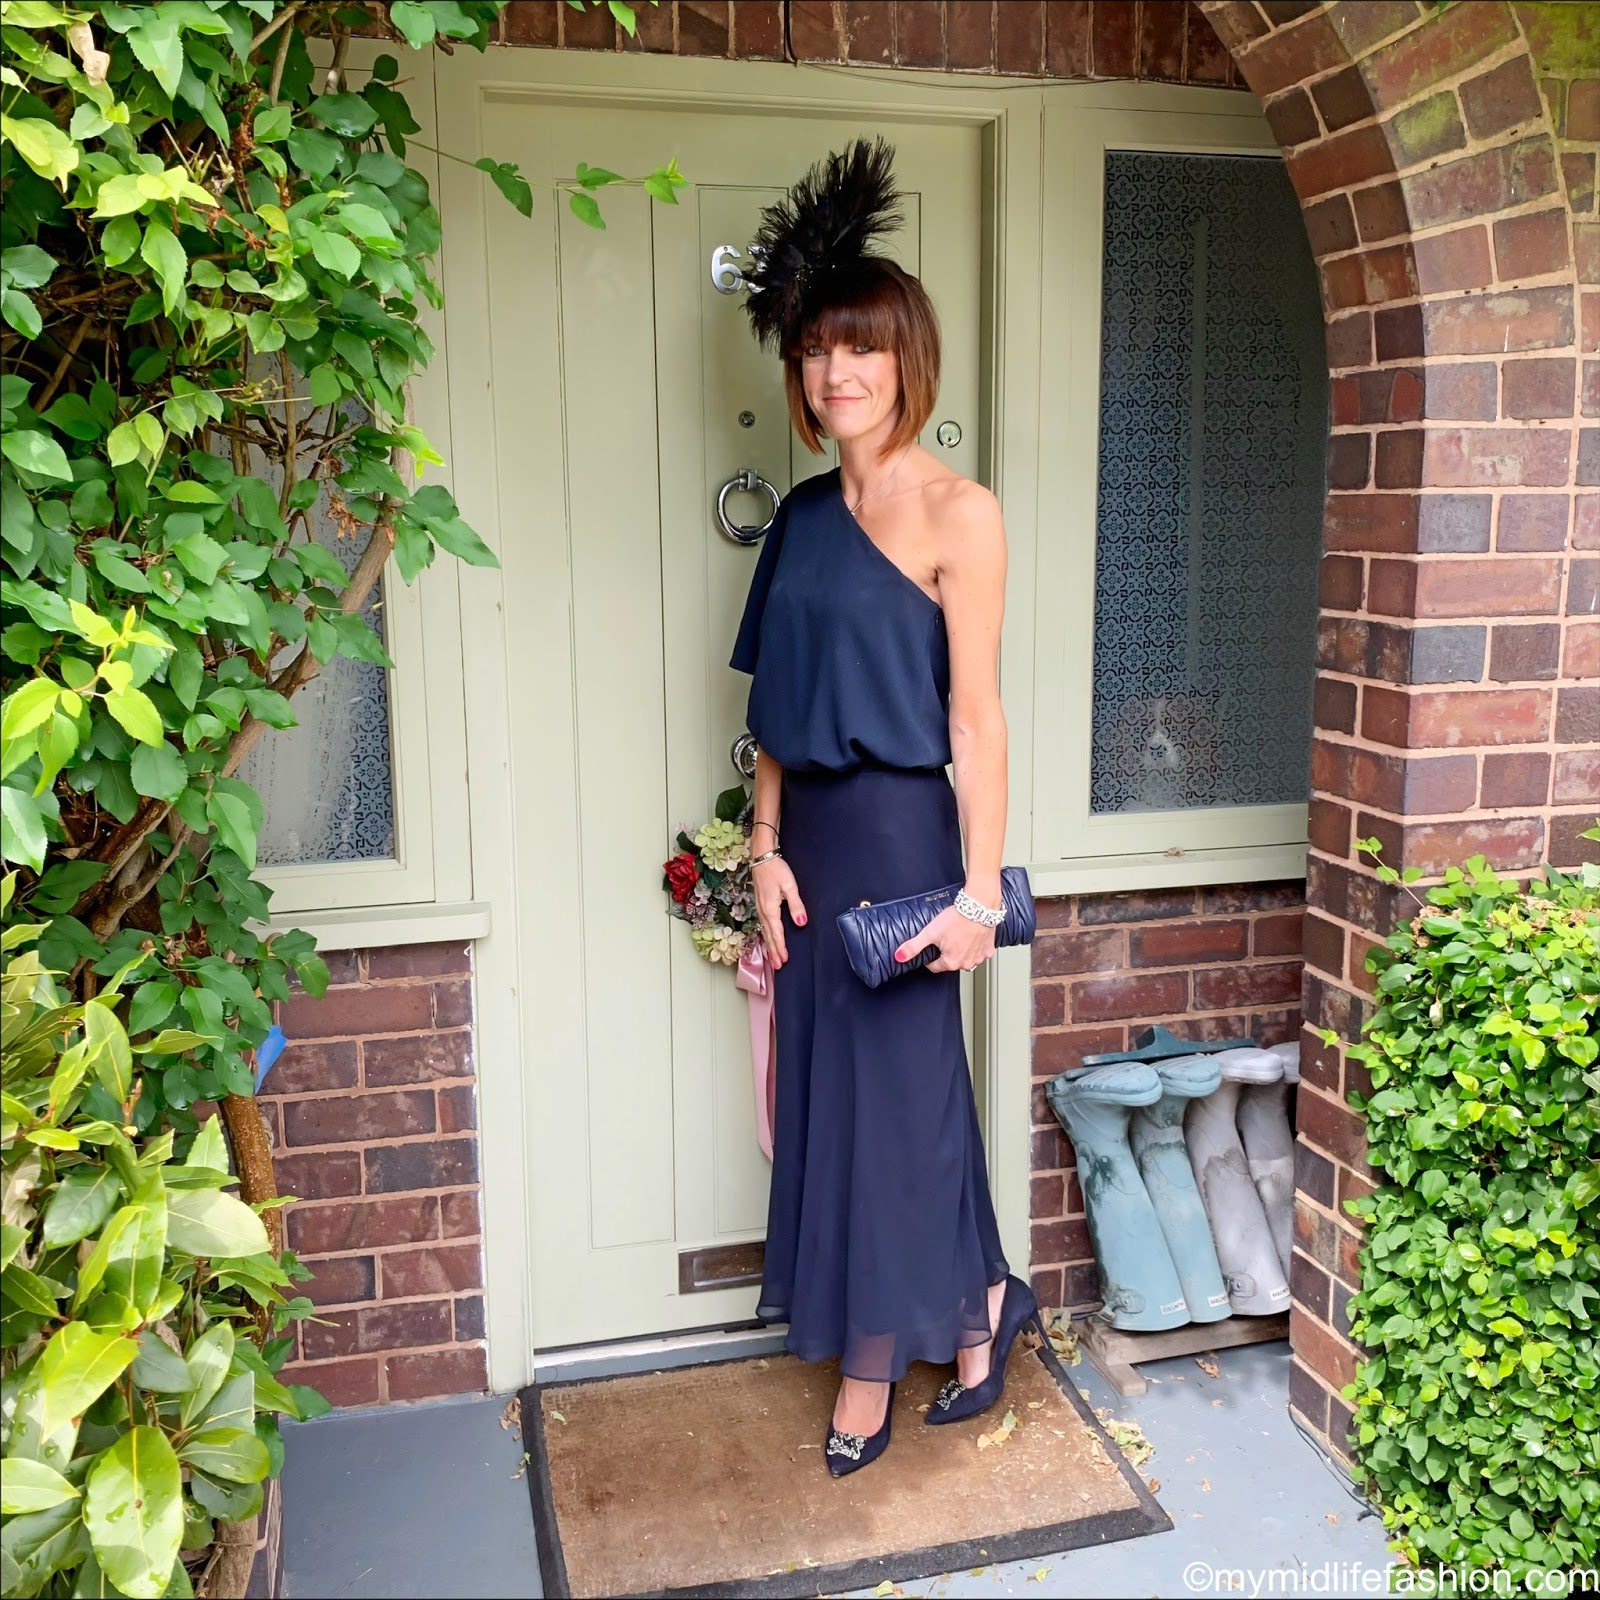 my midlife fashion, viven sheriff peacock fascinator, tibi off the shoulder top, Peter Hahn skirt in 100 percent silk, miumiu clutch, dune betsey court shoes